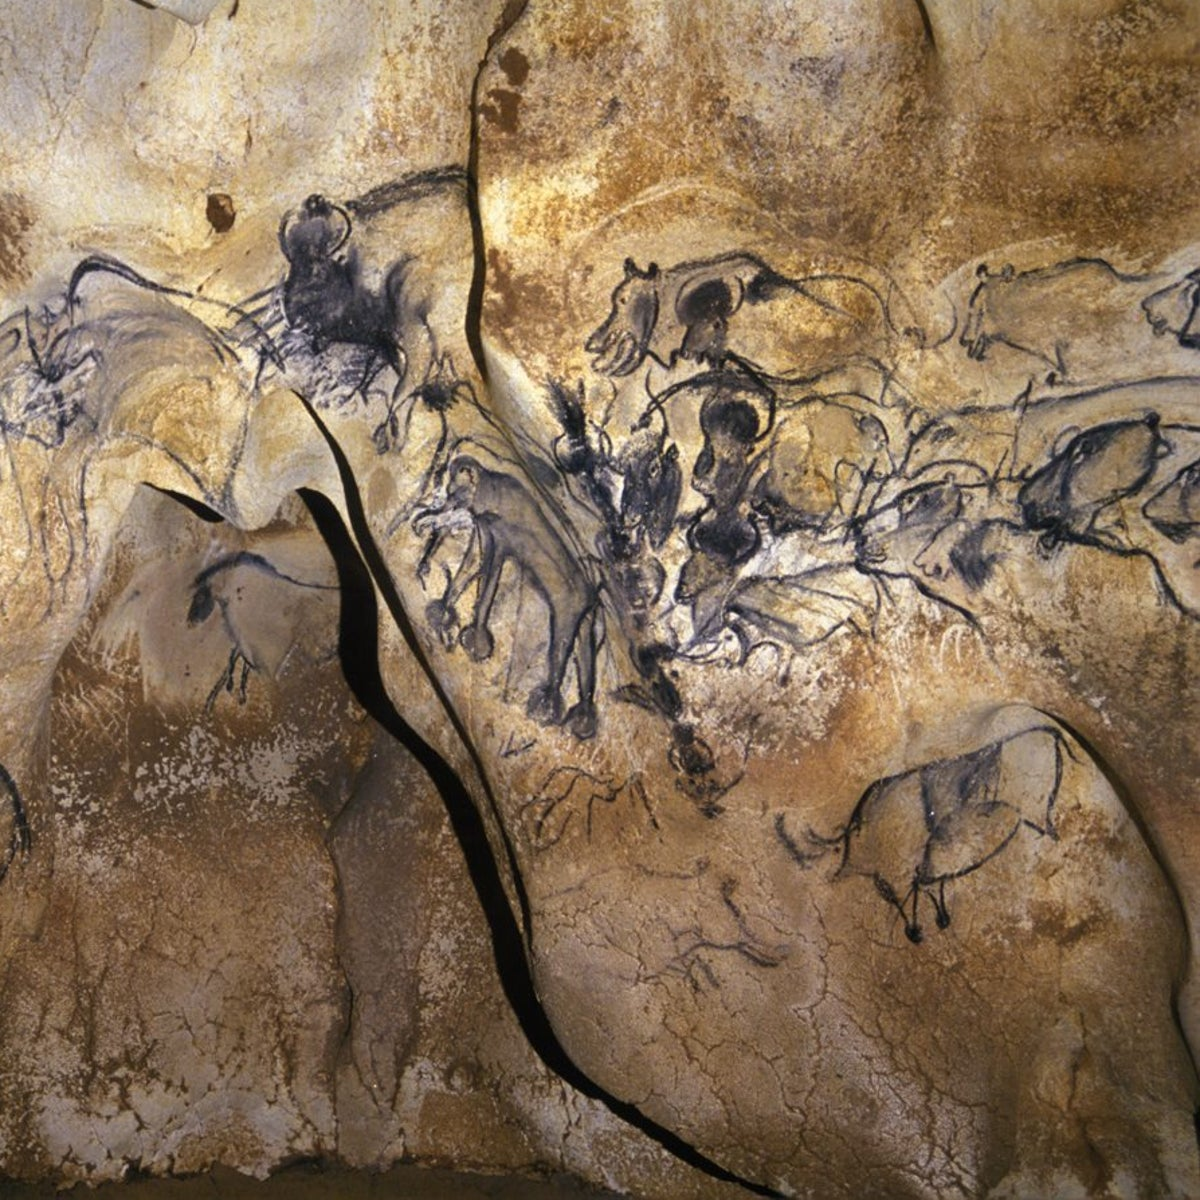 A host of animals drawn in charcoal on the walls of Chauvet Cave in the Ardeche, southern France: Images include rhinos, horses and hippos